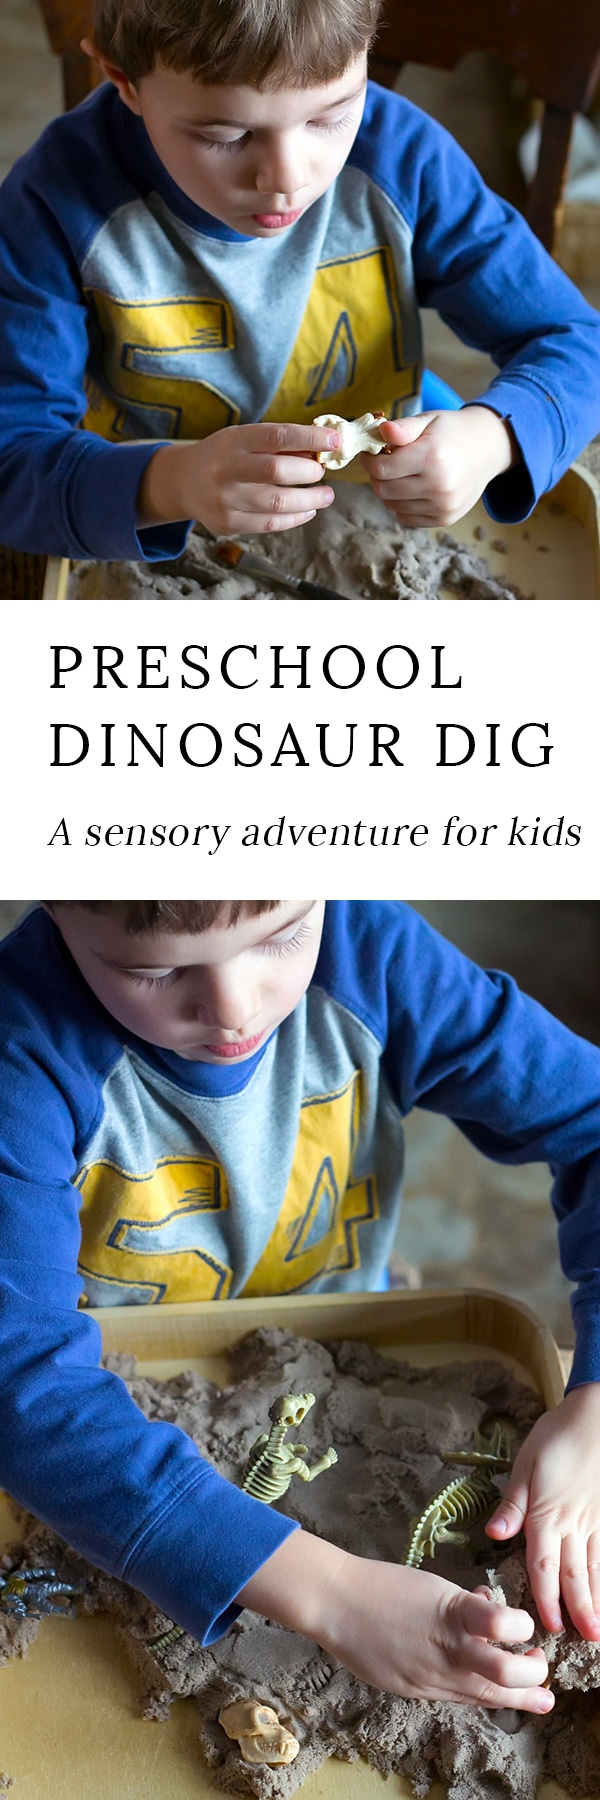 Learn how to set up a simple Dinosaur Dig sensory bin for your preschooler. So easy, but kids love it! It's the perfect sensory play activity for home or school.